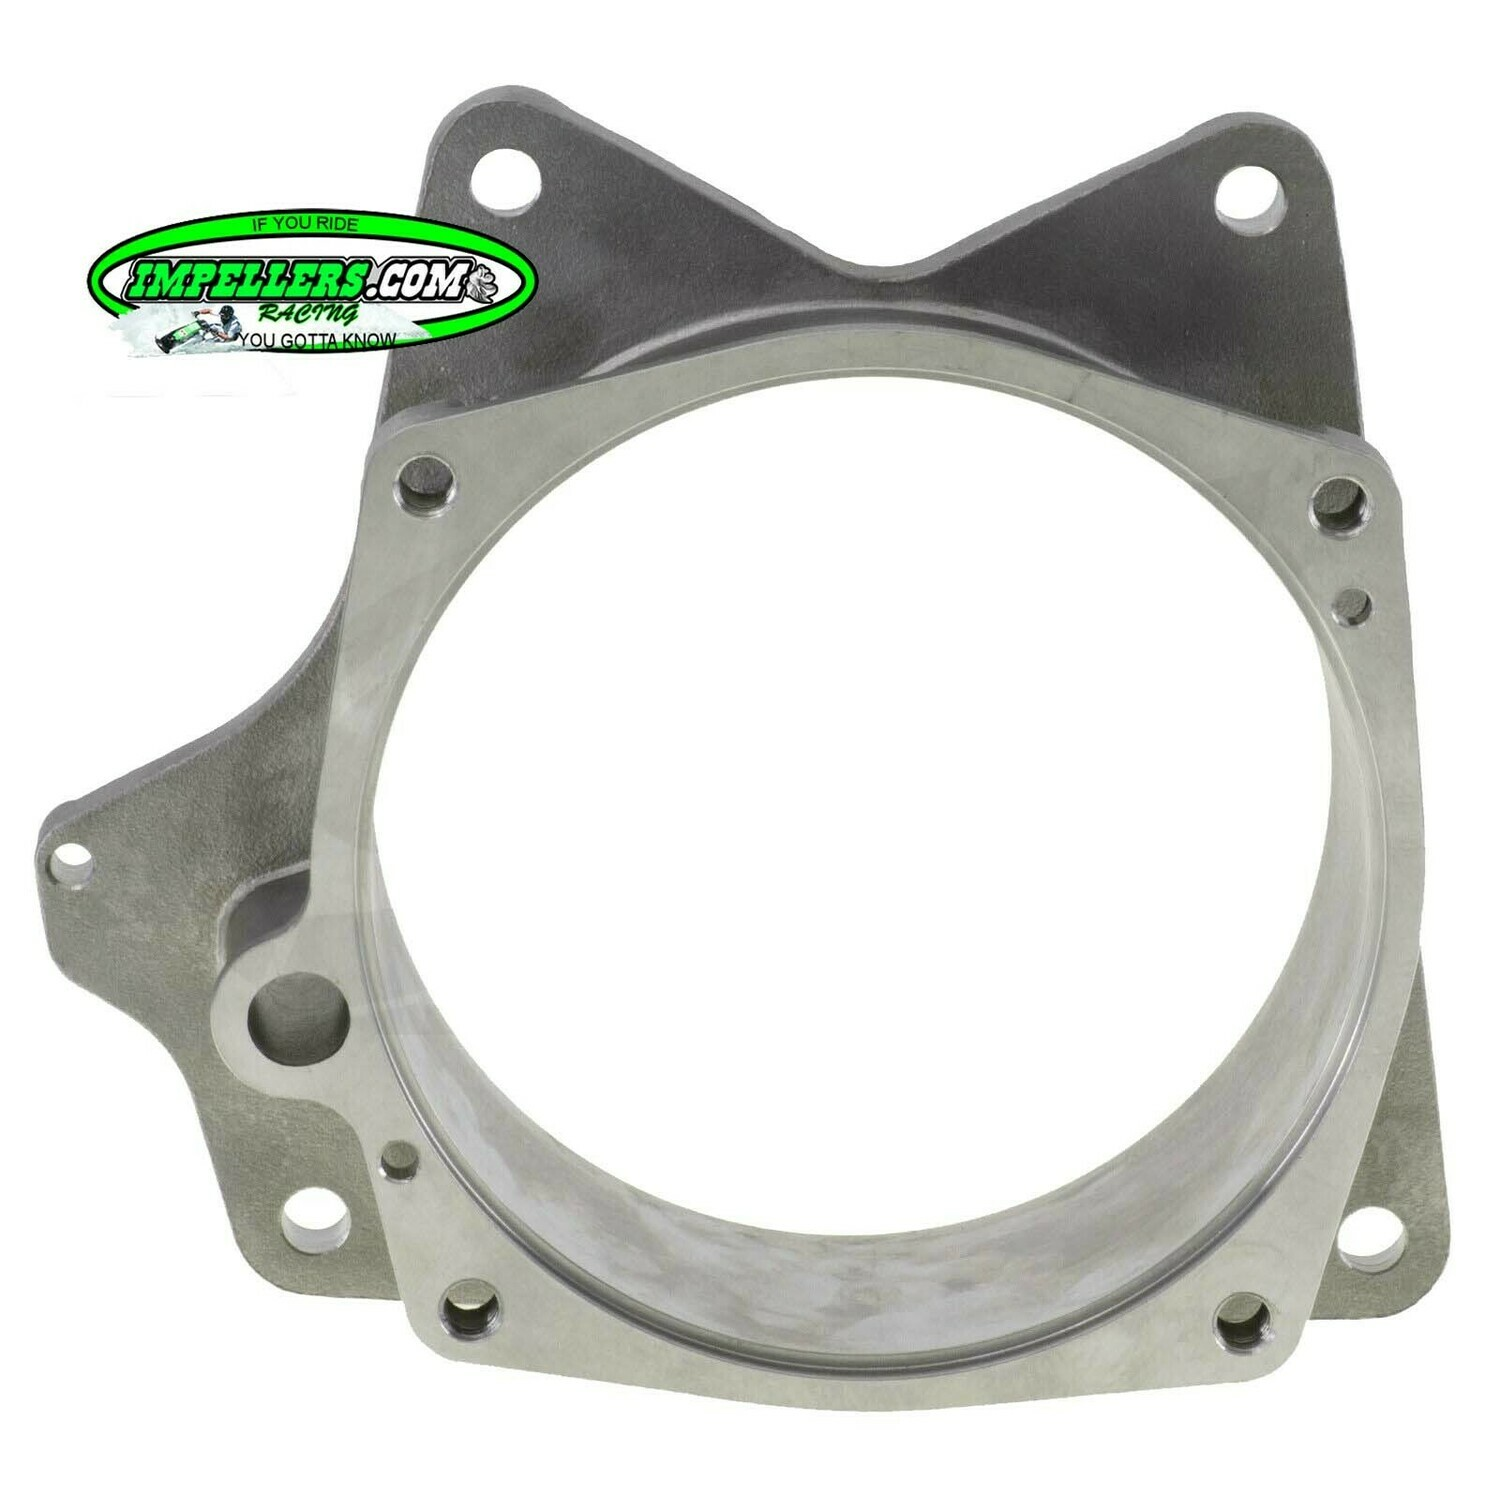 Ultra PRO Stainless Housing 155mm impeller housing solid Stainless Steel Yamaha 4-Stroke & 800/1200/1300 up to 2019